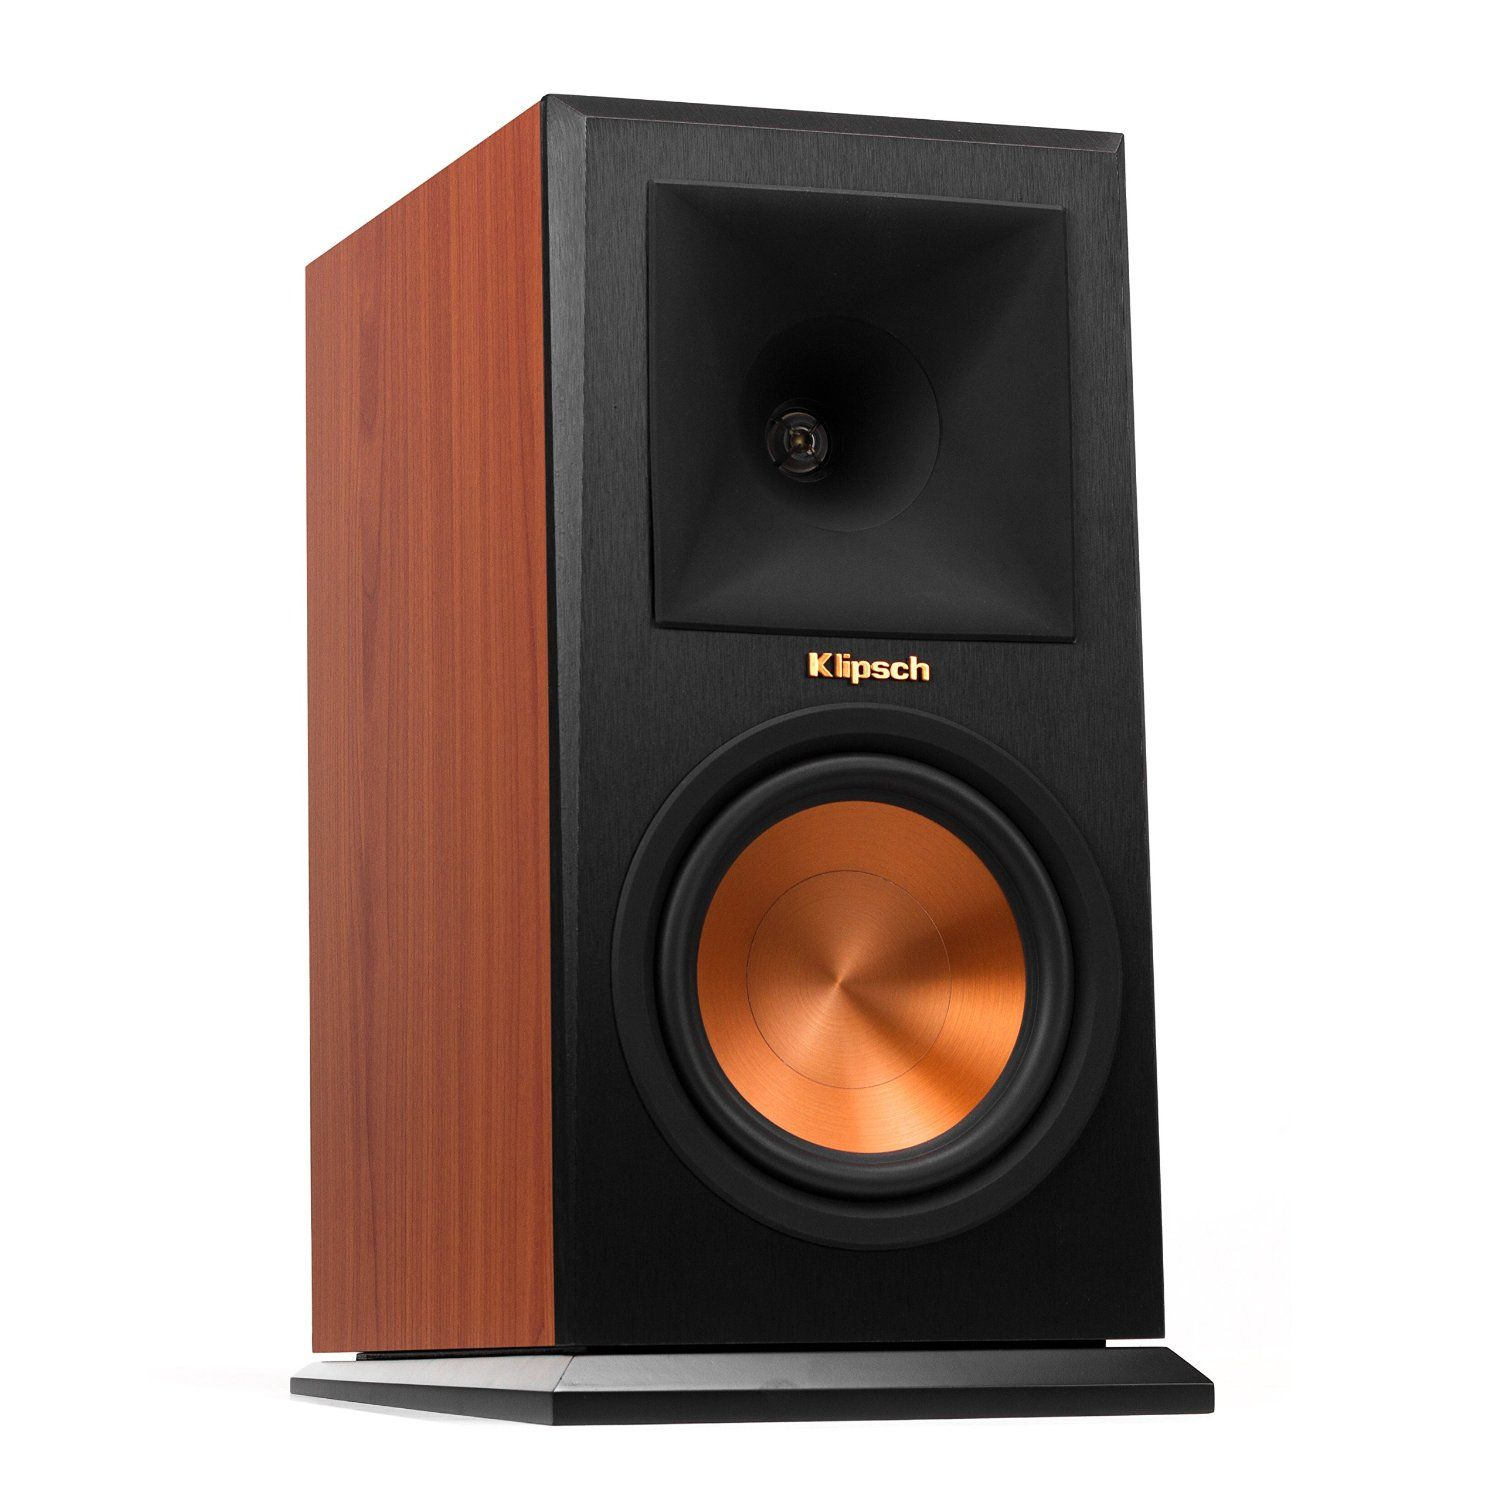 Klipsch RP160M Reference Premiere Monitor